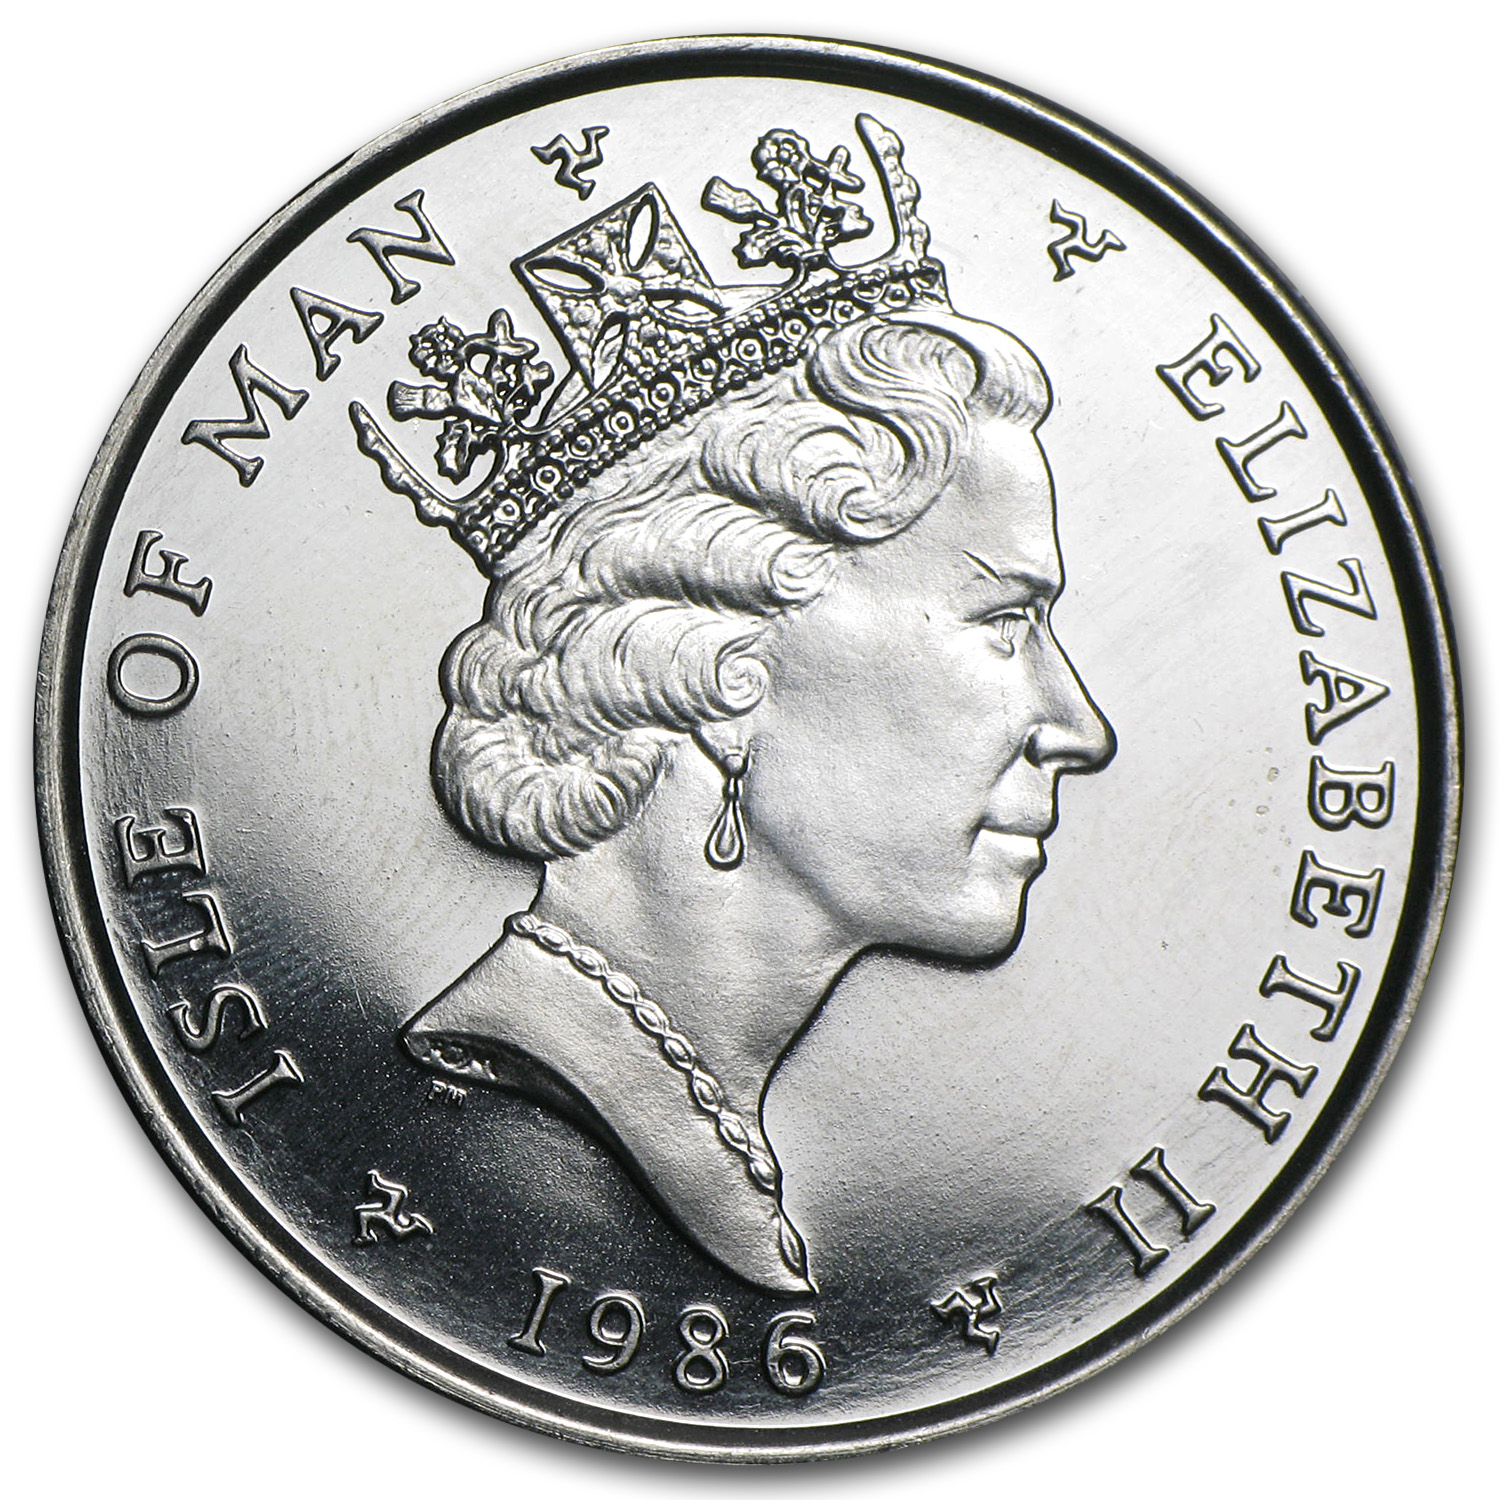 1986 Isle of Man 1 oz Platinum Noble BU (Pobjoy Mint)